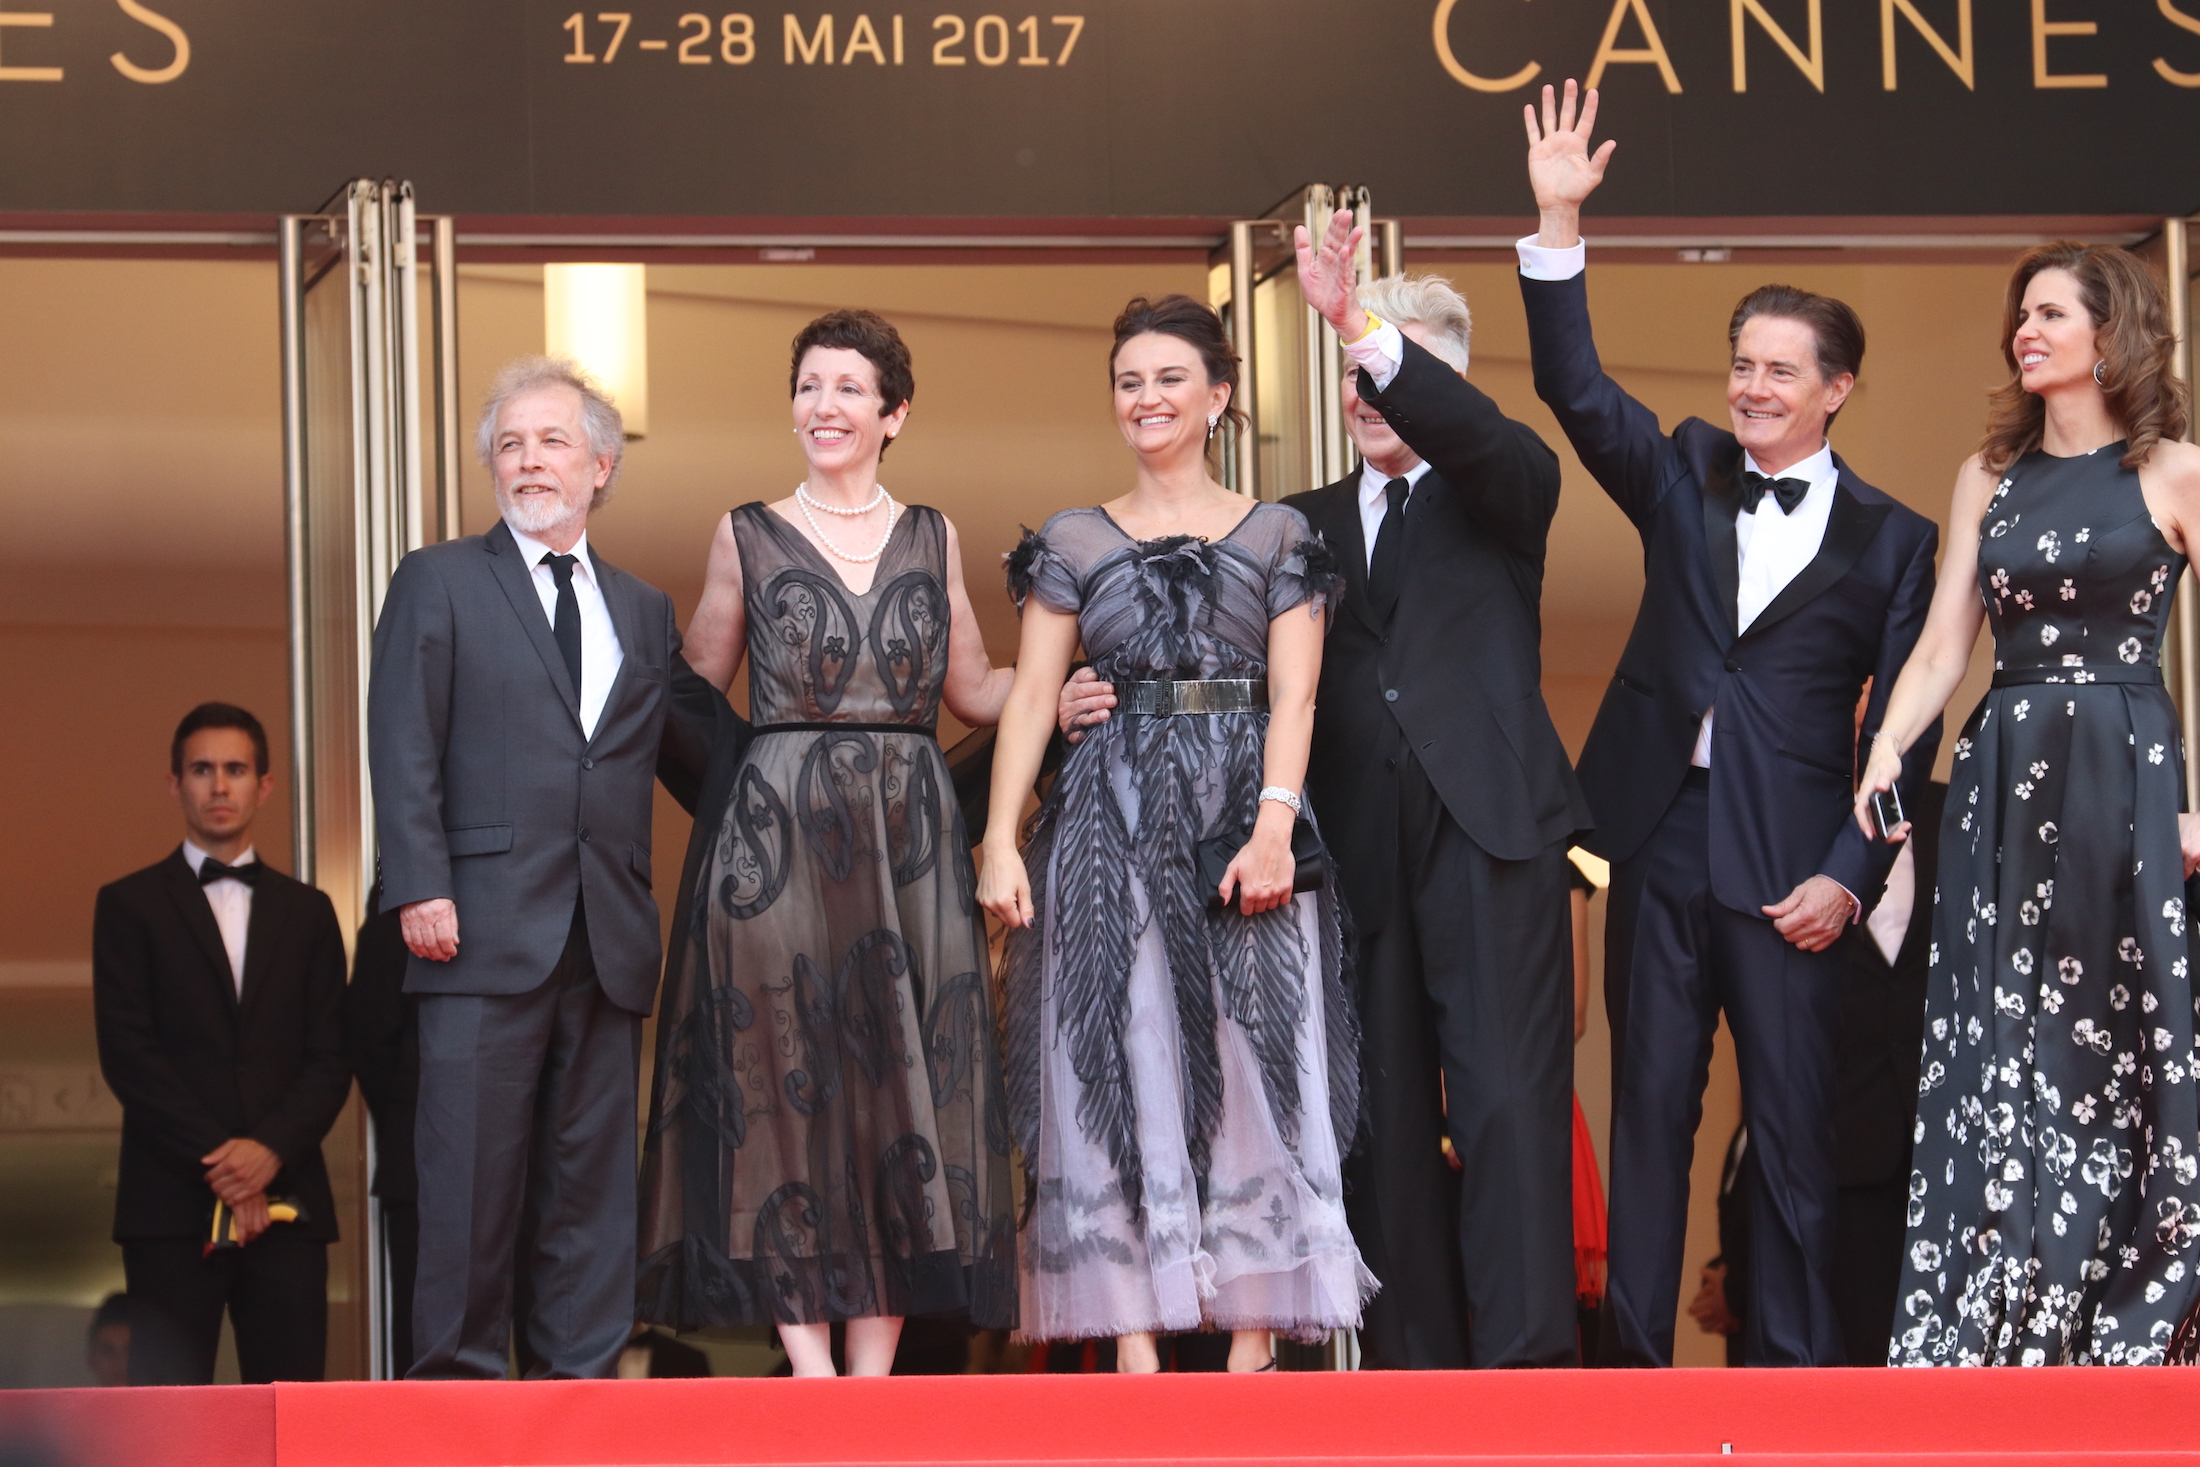 Cannes 2017: Kyle MacLachlan e David Lynch salutano i fan sul red carpet di Twin Peaks